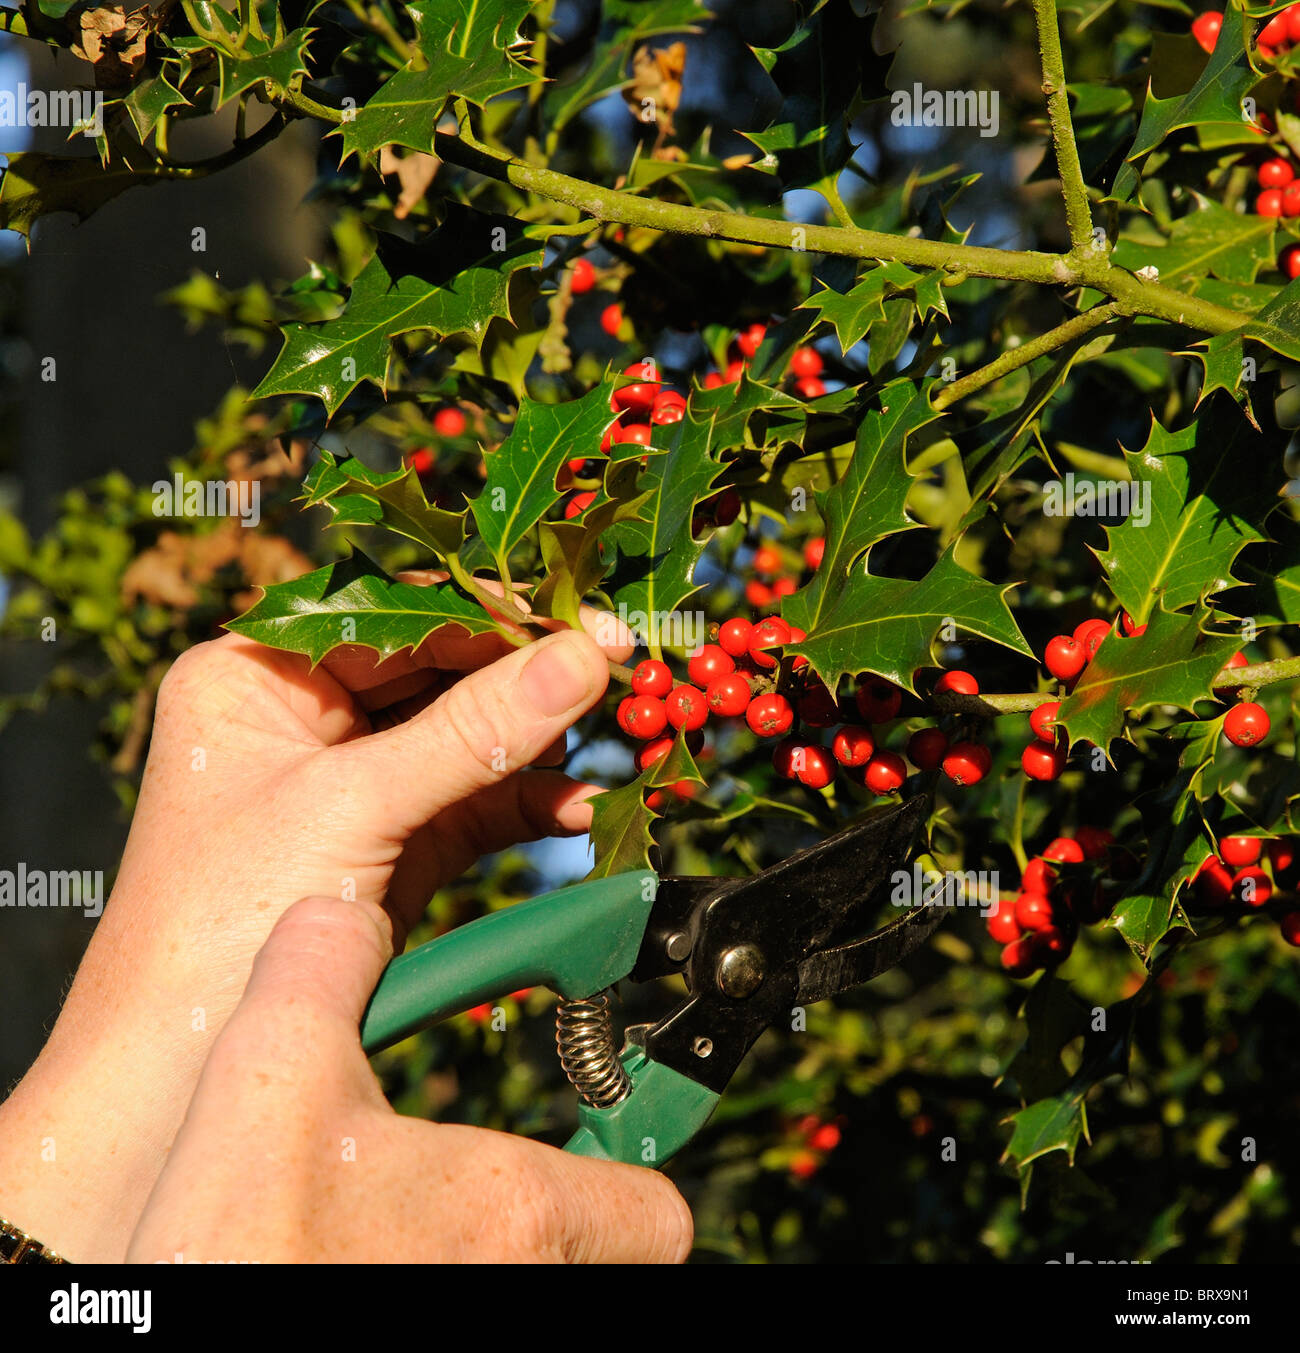 Cutting Red Berries On A Holly Tree Branch For Christmas